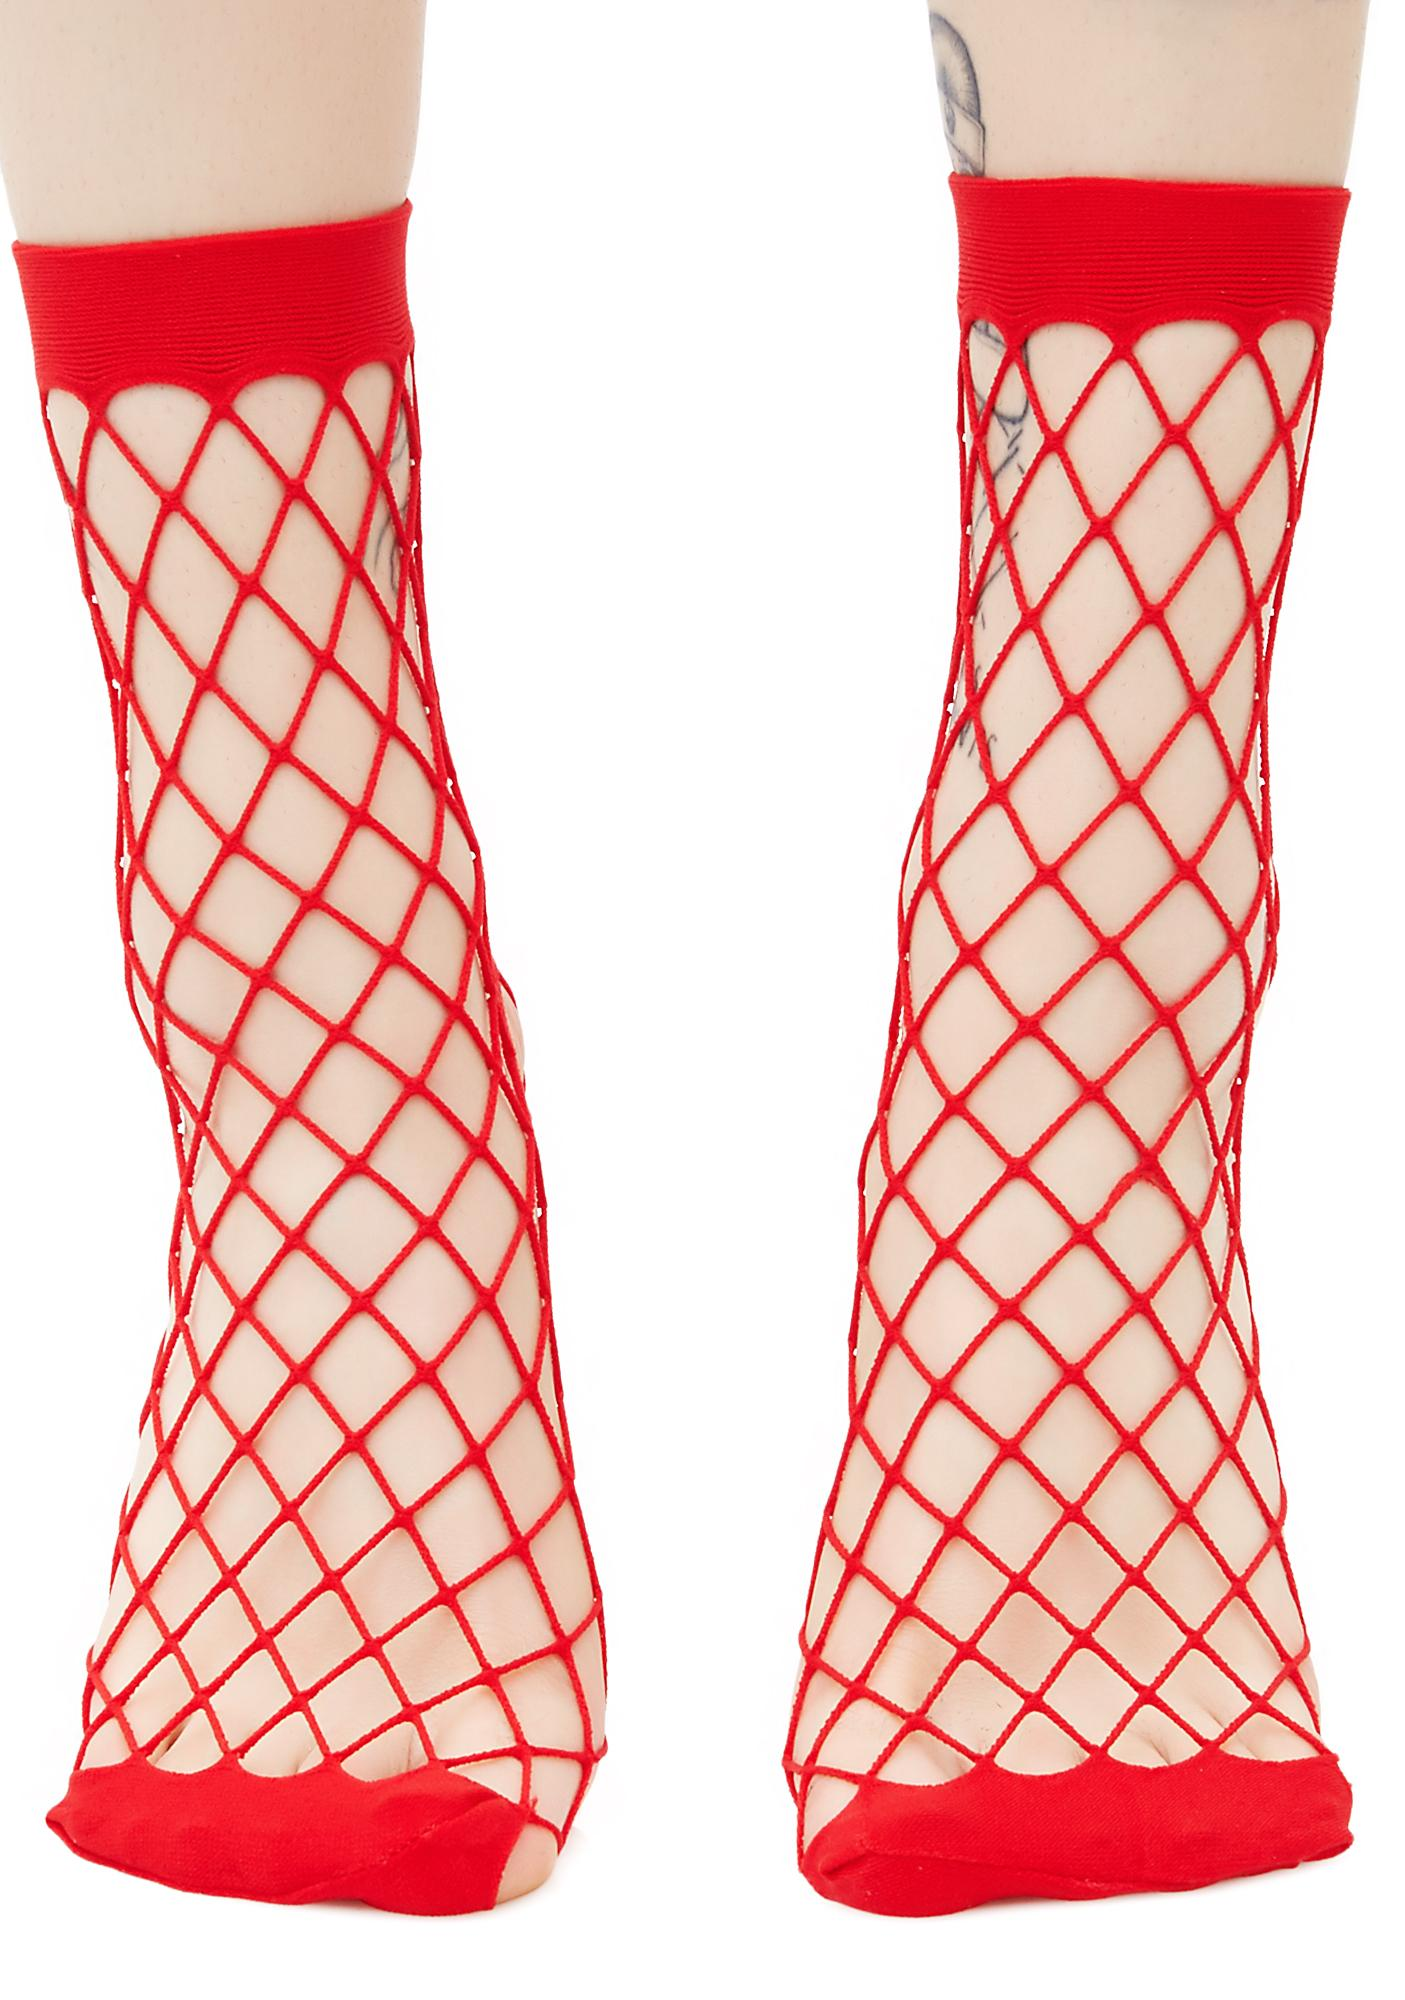 Fire Troublemaker Fishnet Socks